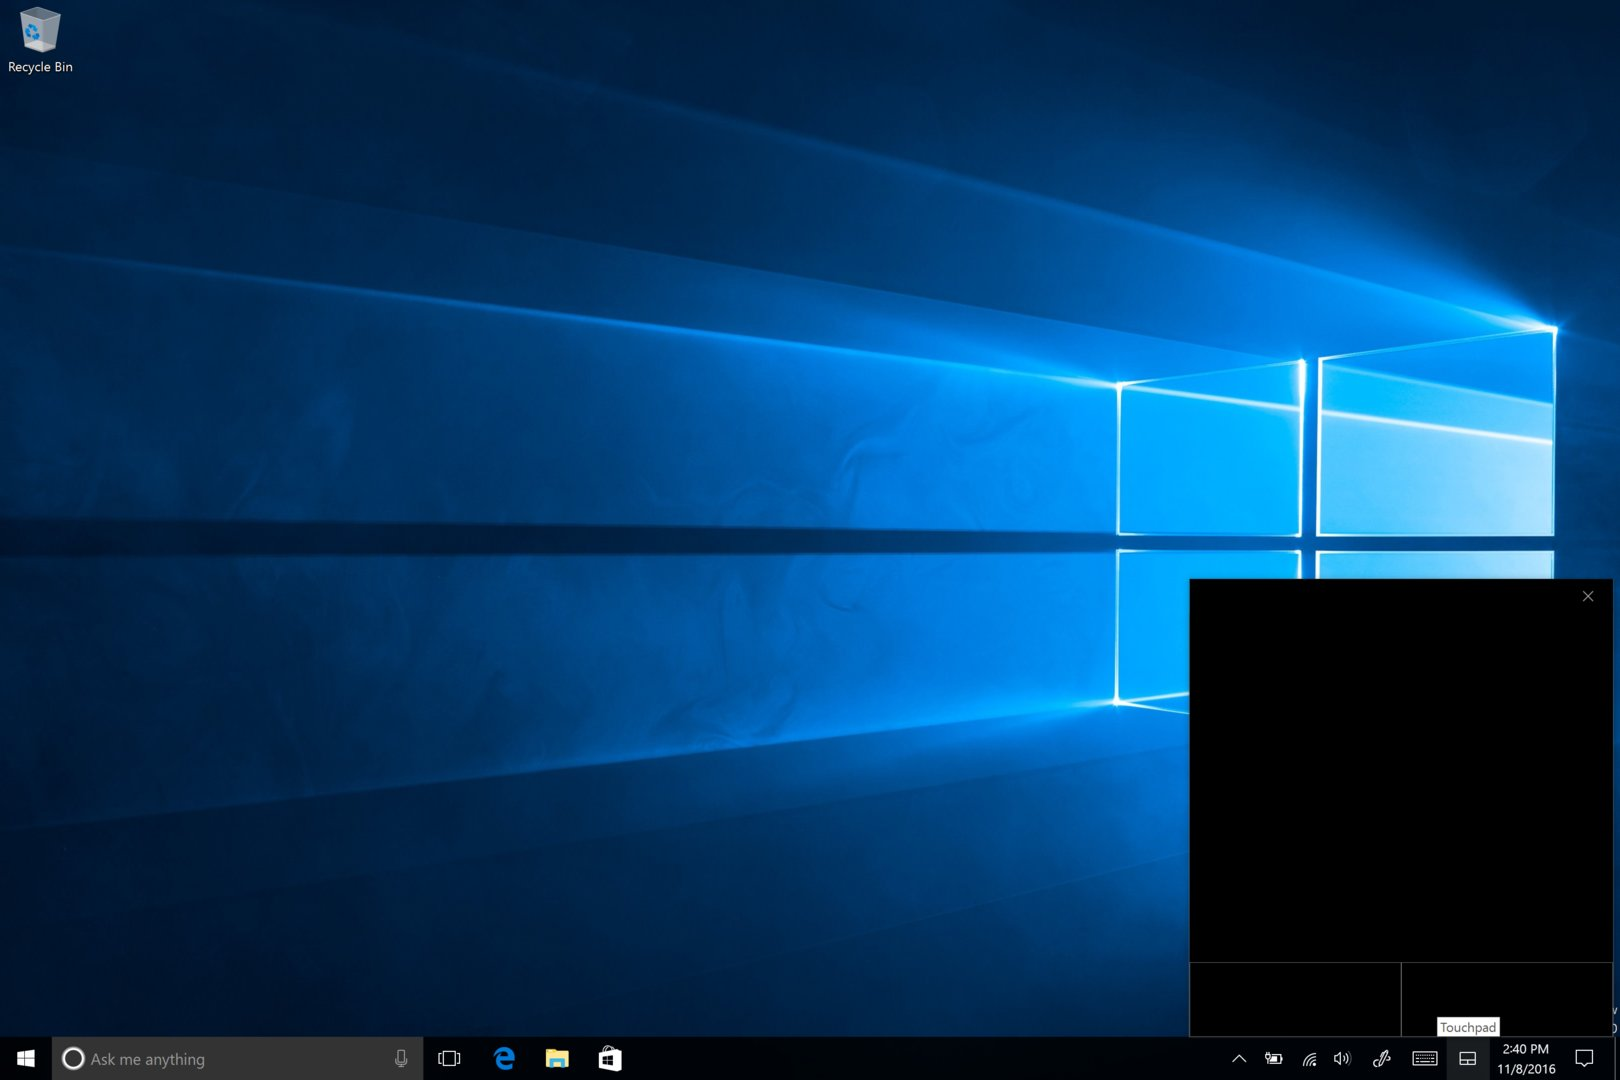 Virtuelles Touchpad unter Windows 10 Build 14965